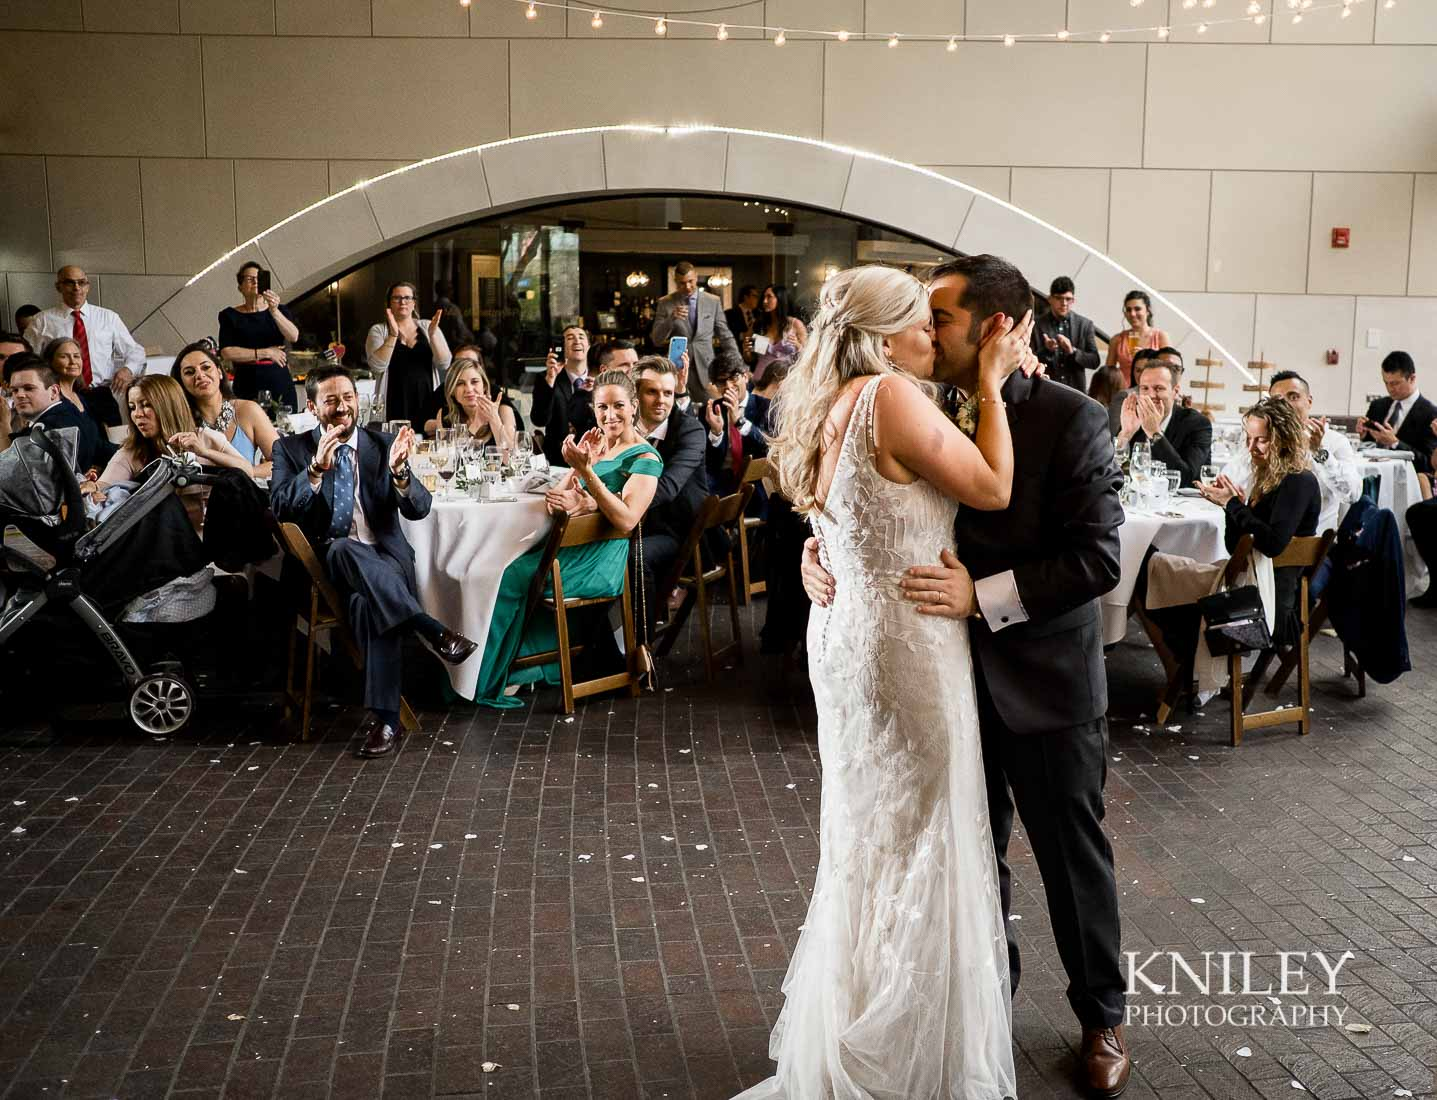 63-Max-of-Eastman-Wedding-and-Reception-Rochester-NY-Kniley-Photography.jpg